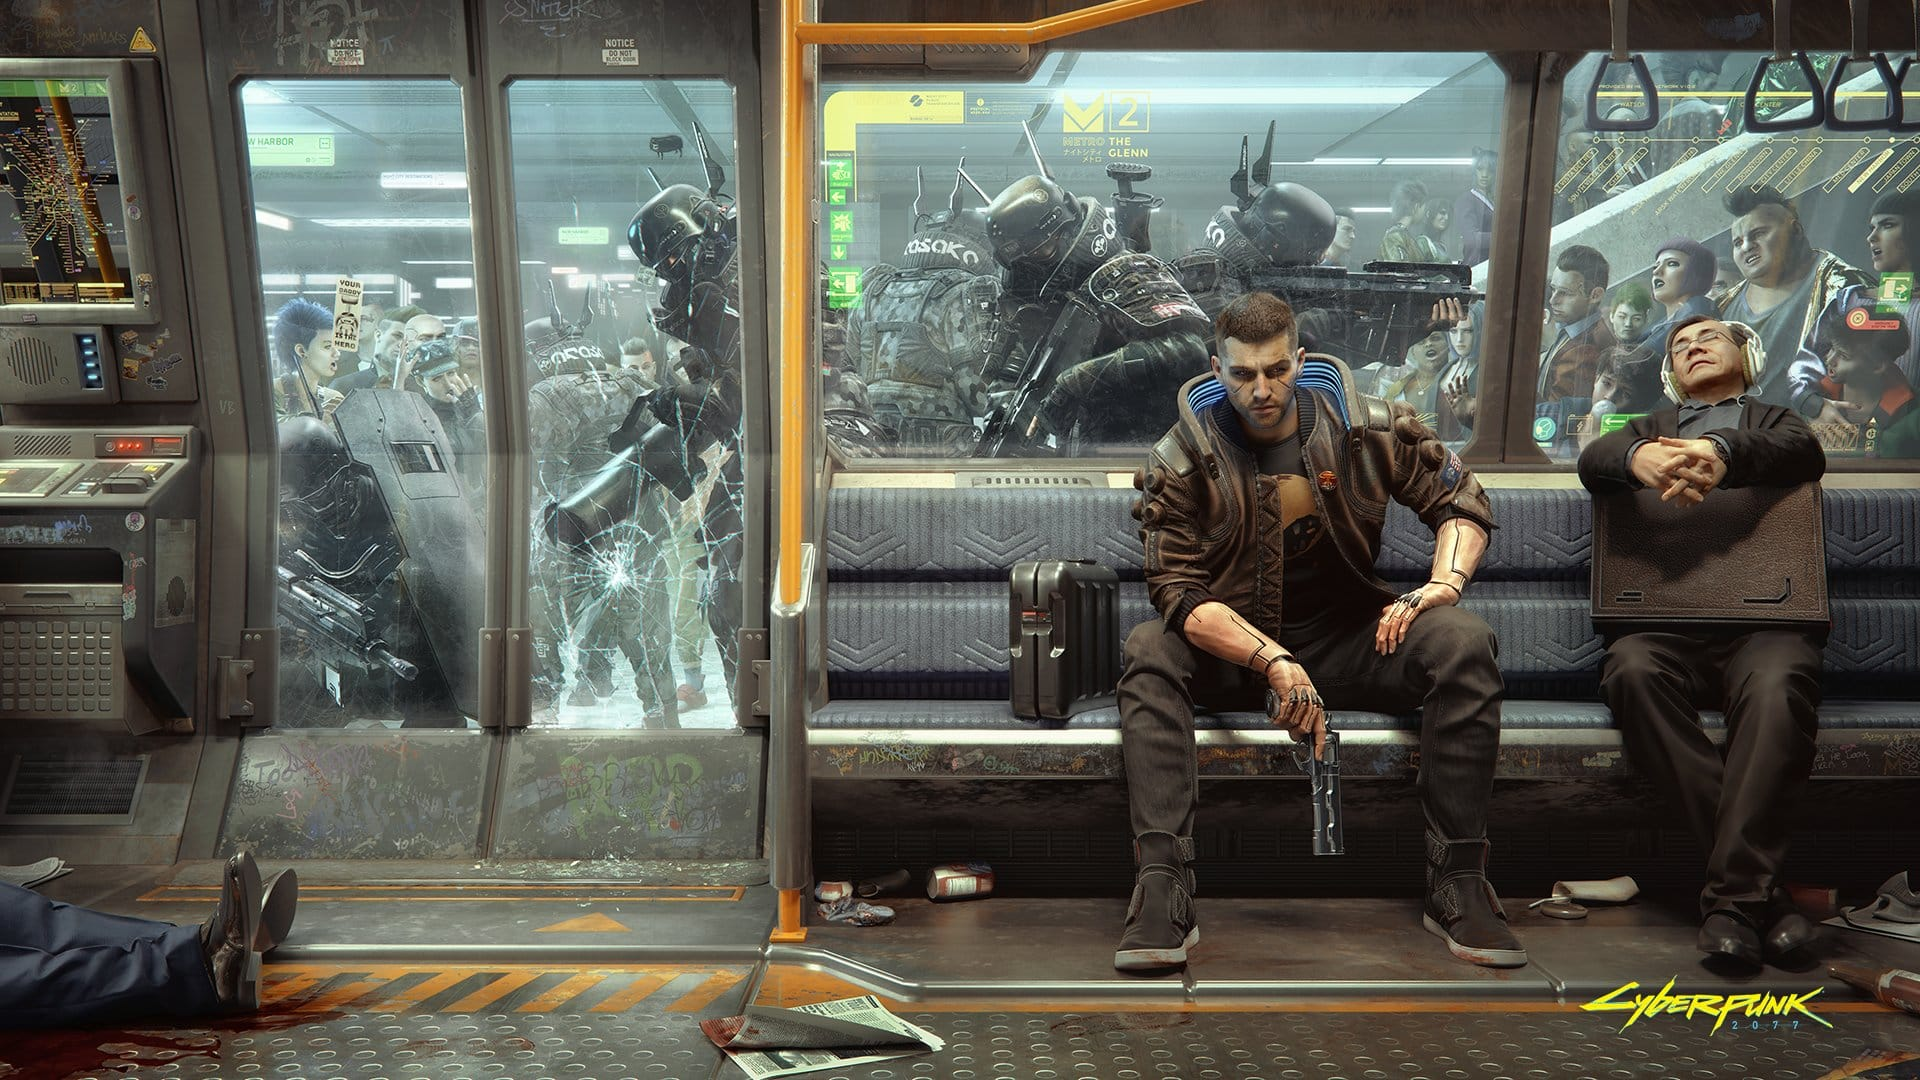 New Cyberpunk 2077 Wallpaper Shows How Metro Commuting Works 1920x1080